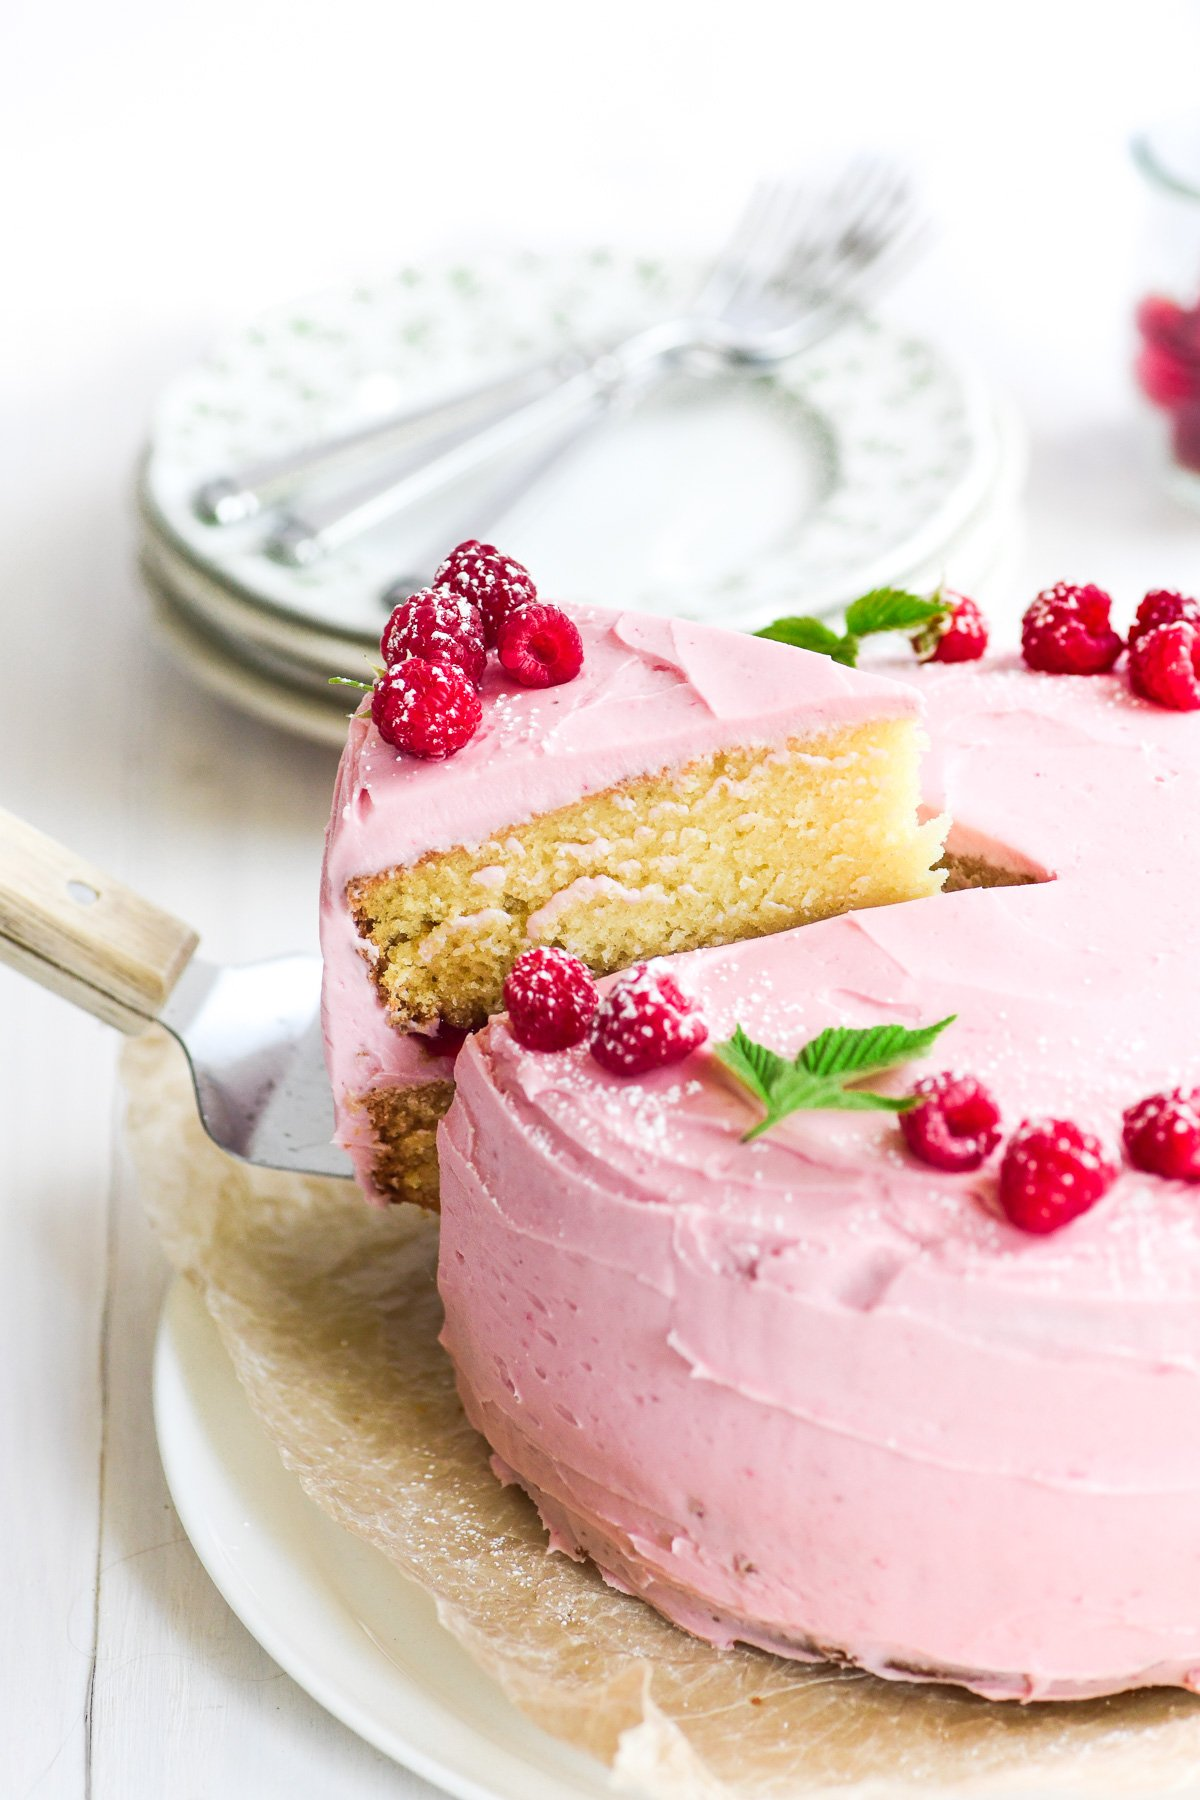 A slice of raspberry layer cake being served.